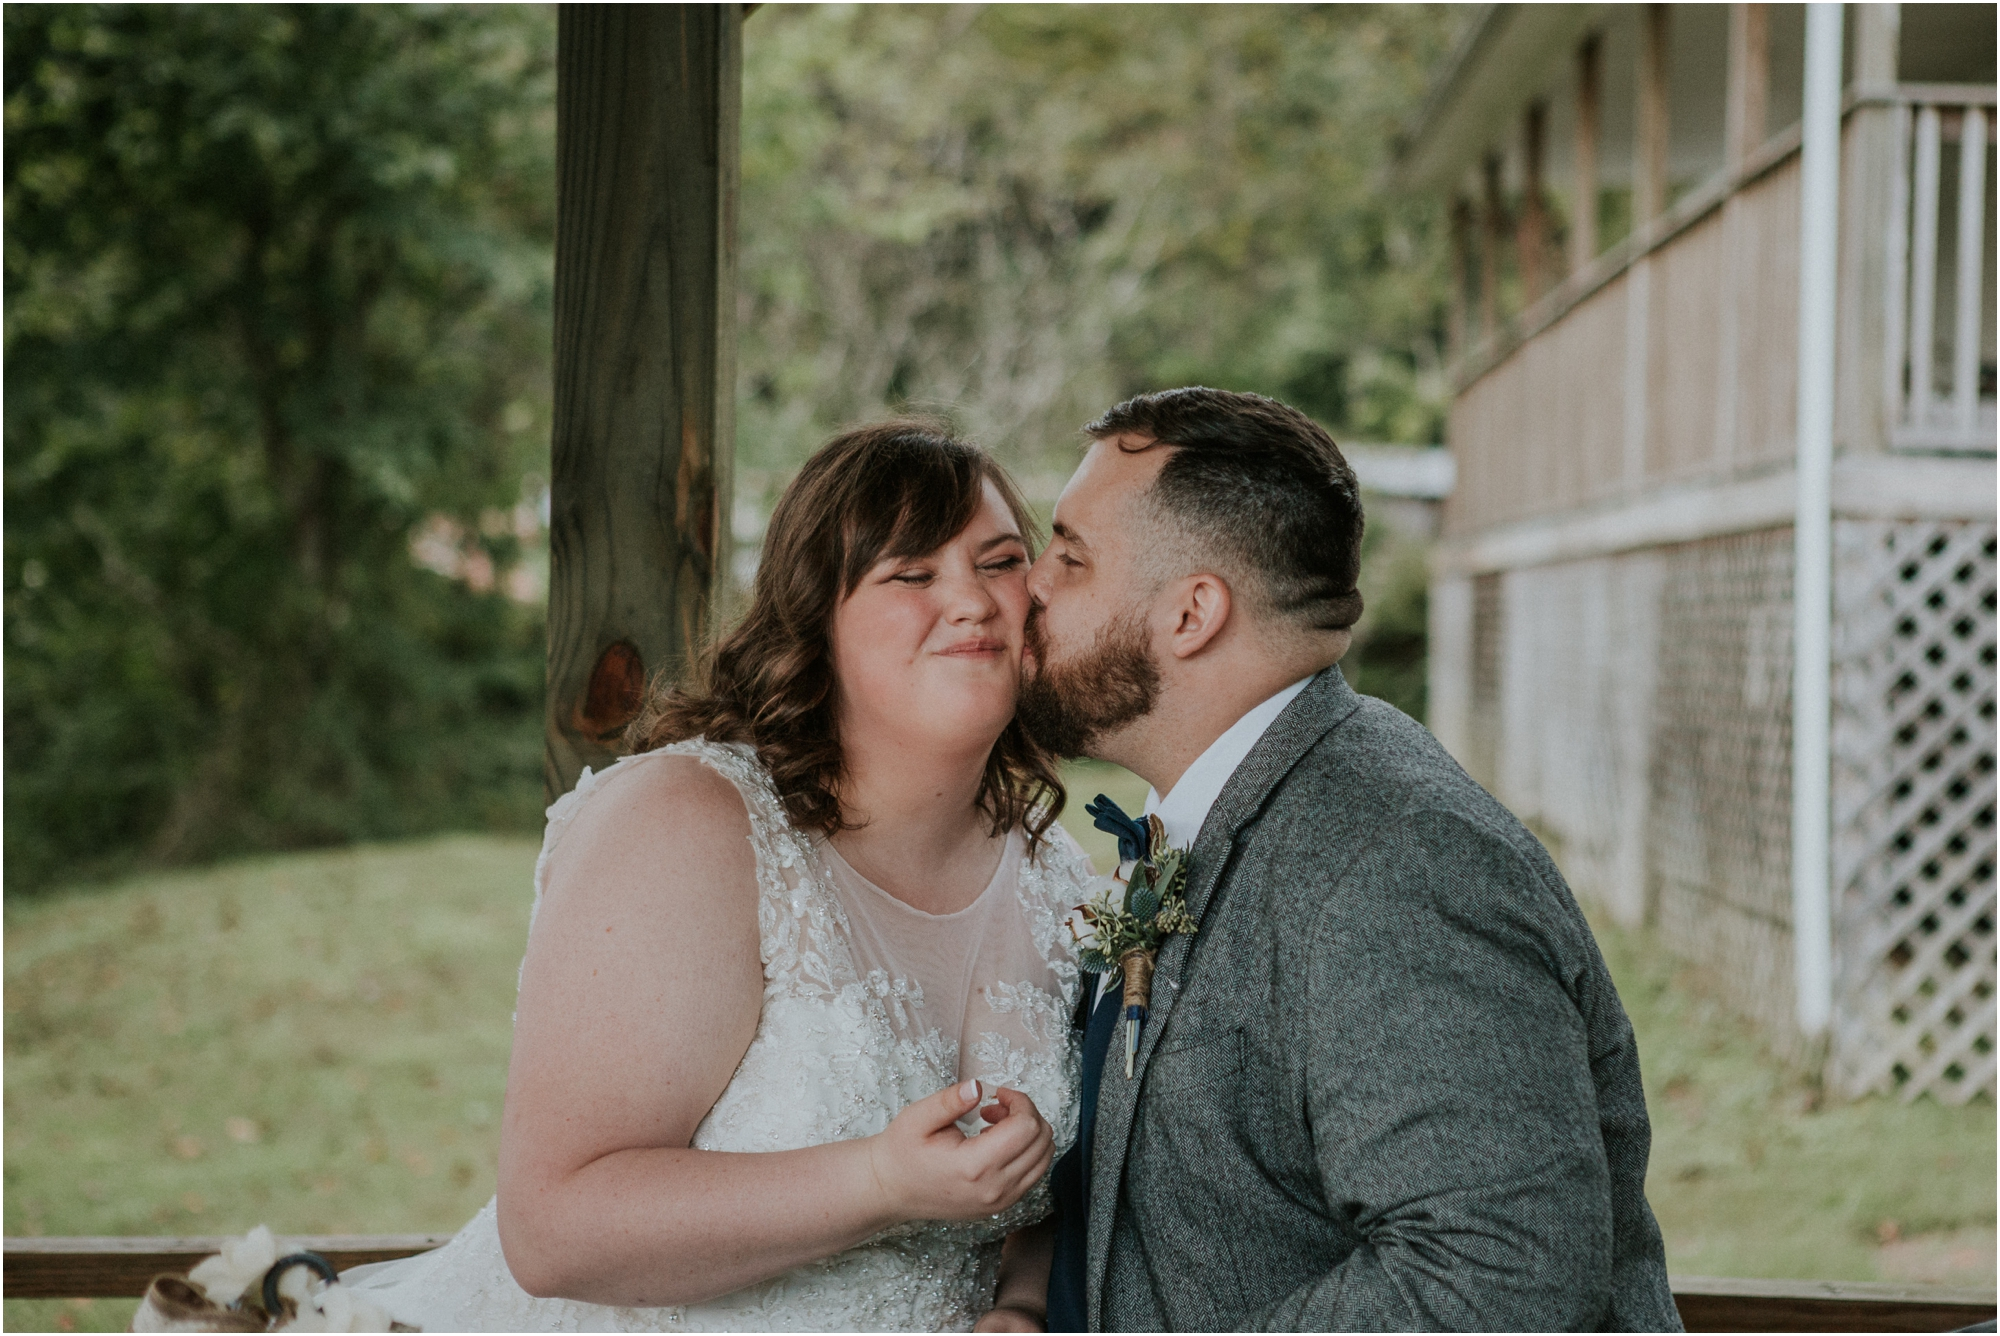 caryville-robbins-middle-tennessee-intimate-cozy-fall-navy-rustic-backyard-wedding_0128.jpg